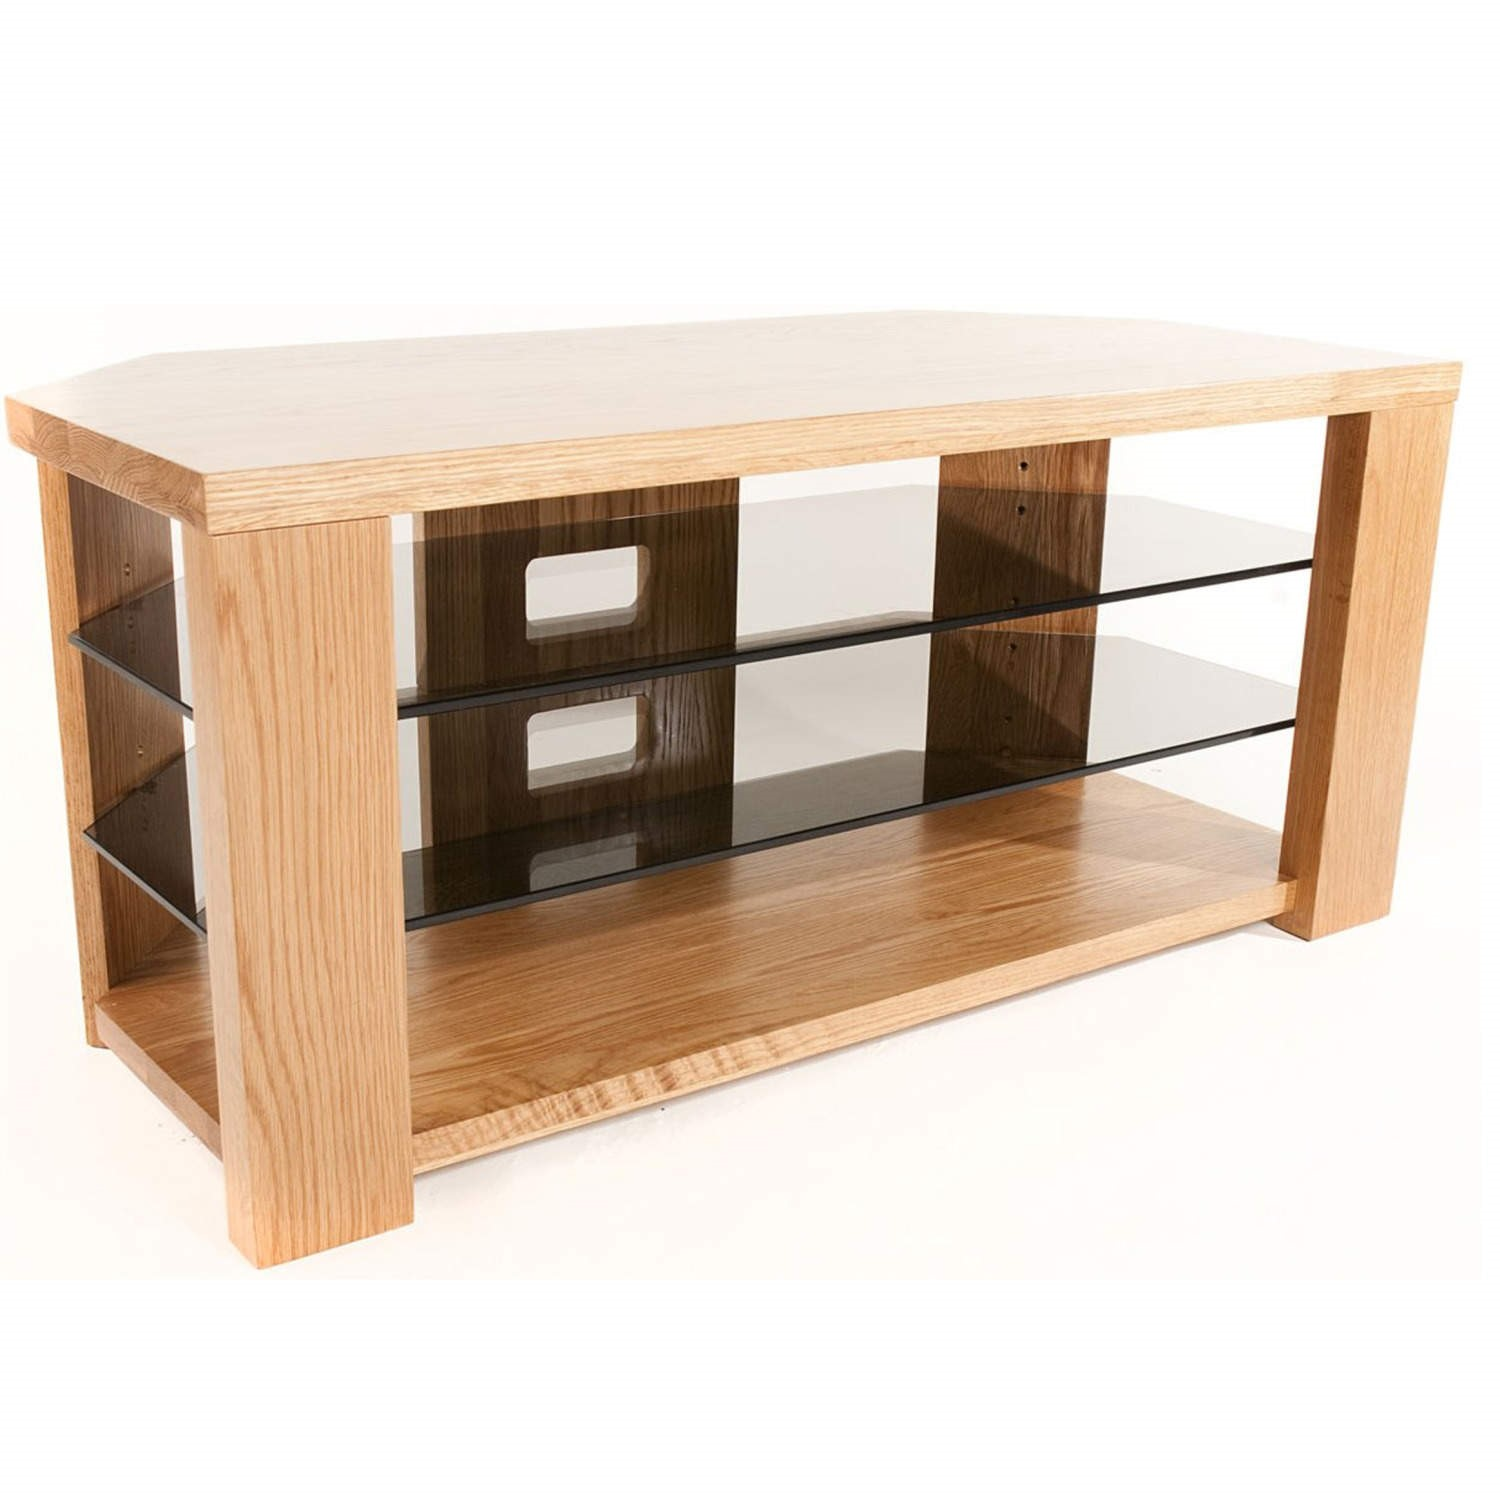 meet f0736 132b9 Optimum BENCH 1200 Solid Oak TV Stand - Up to 55 inch